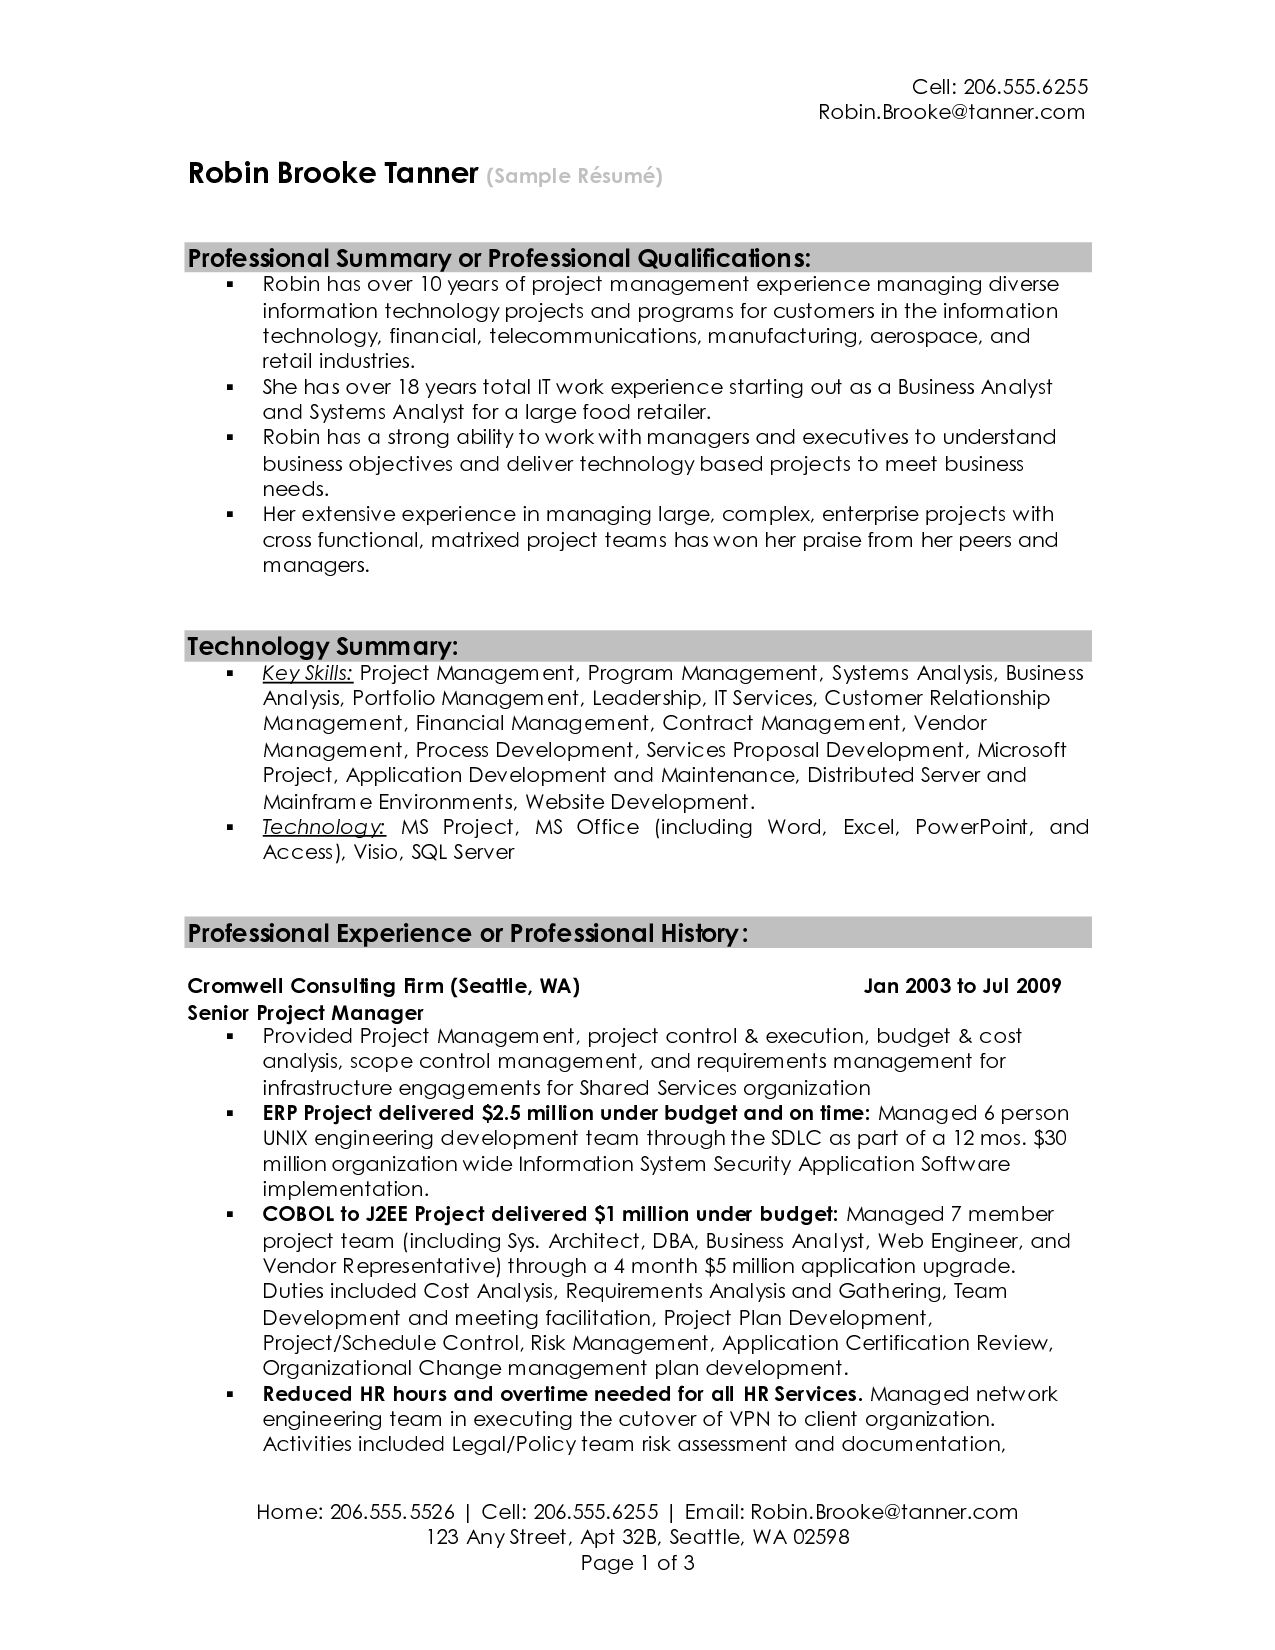 Professional Summary Resume Examples Professional Resume Summary  Examples Of A Professional Resume